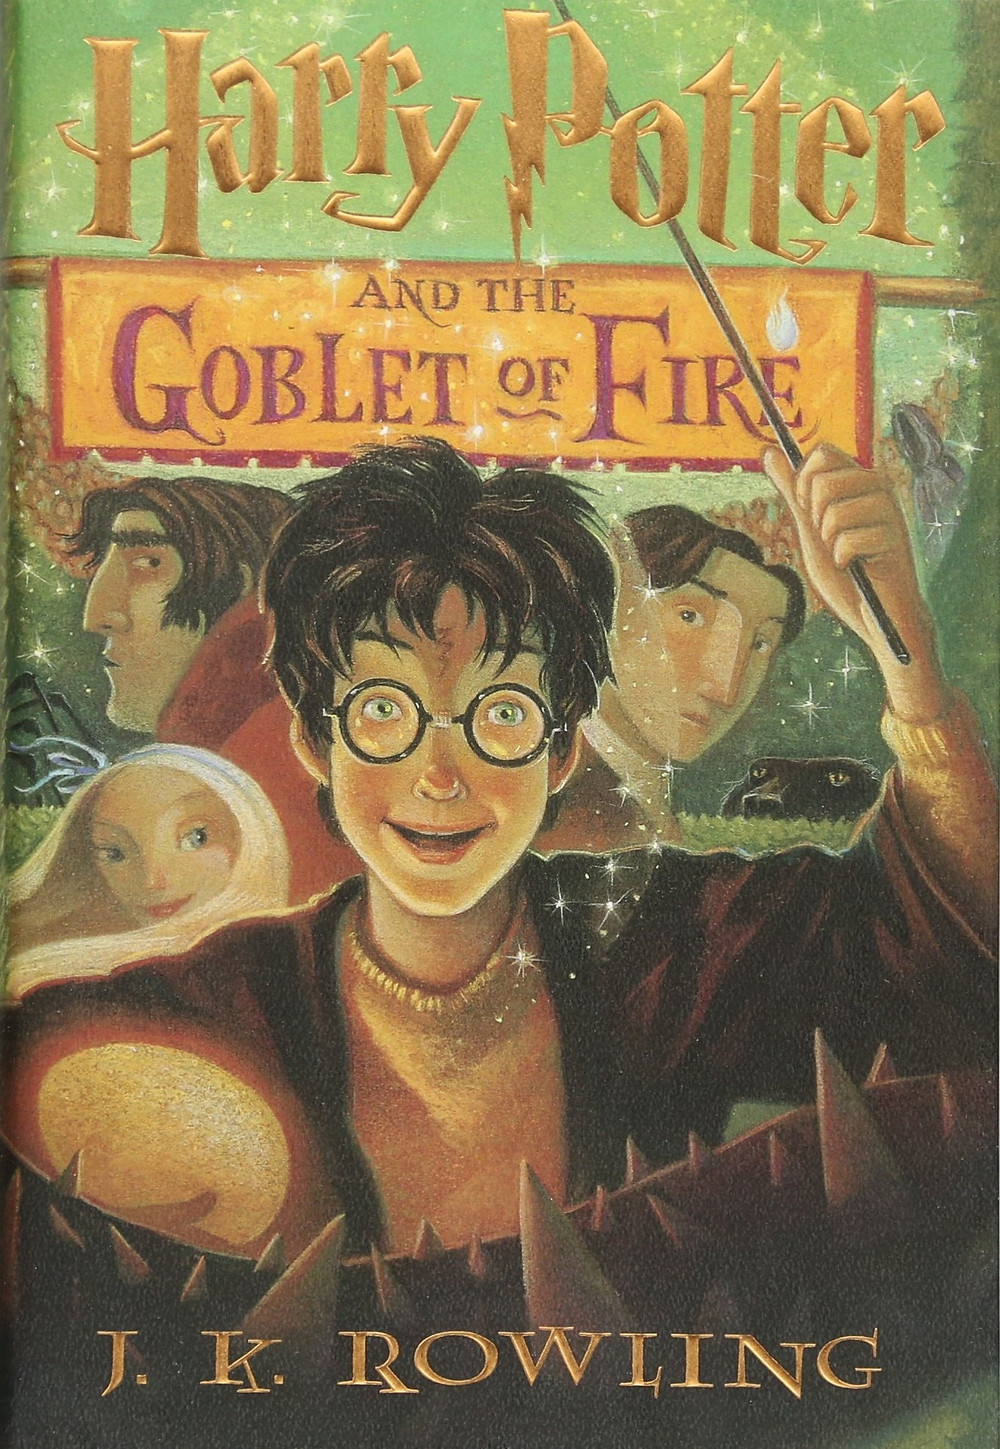 Harry Potter and the Goblet of Fire by J.K. Rowling : the book slut book reviews thebookslut